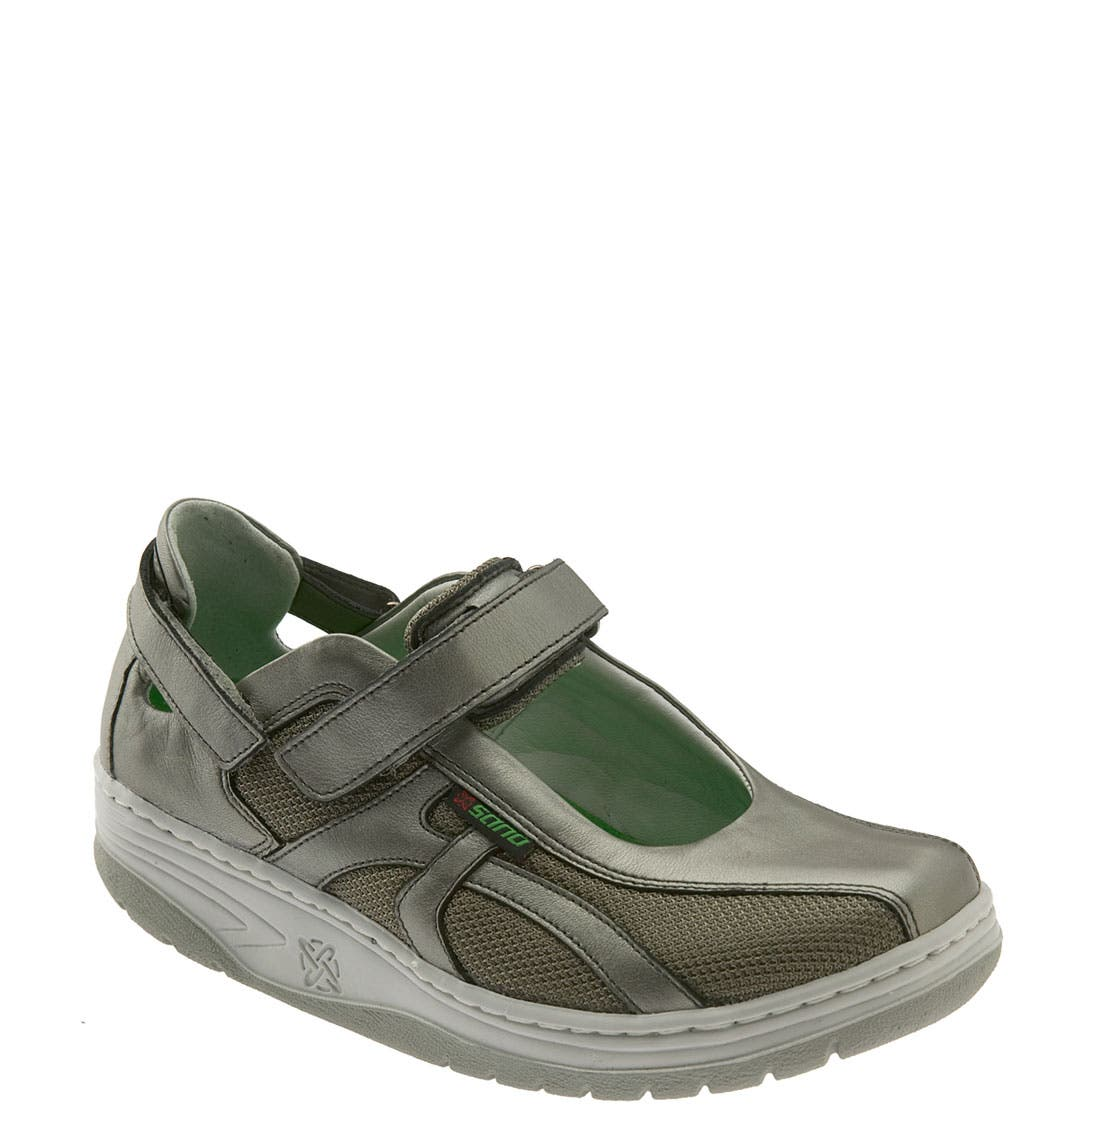 Sano by Mephisto 'Excess' Walking Shoe,                             Main thumbnail 1, color,